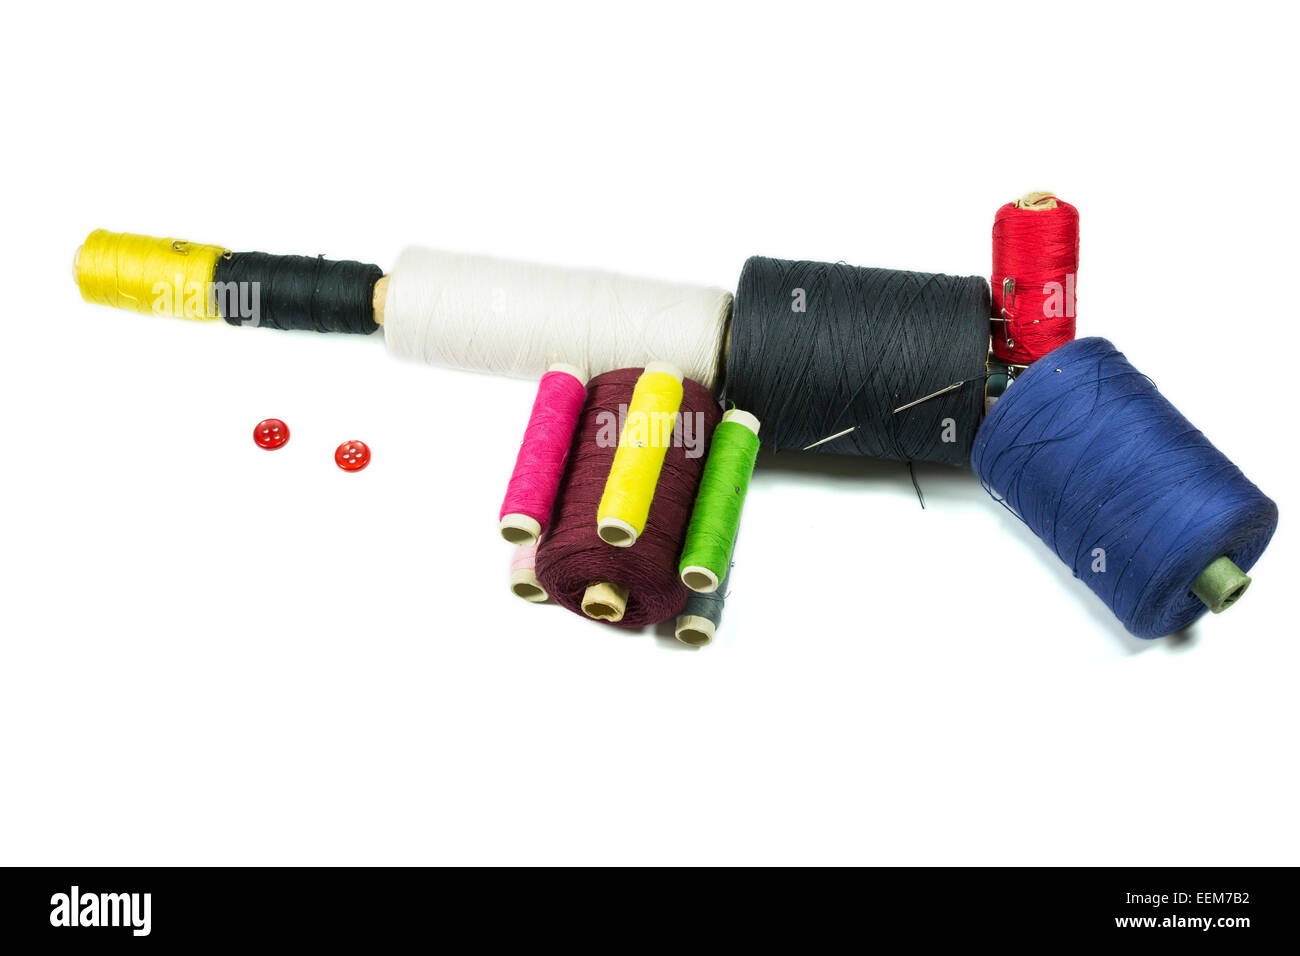 Machine gun   improvised from colored sewing thread reels giving the resemblance of a firearm - Stock Image